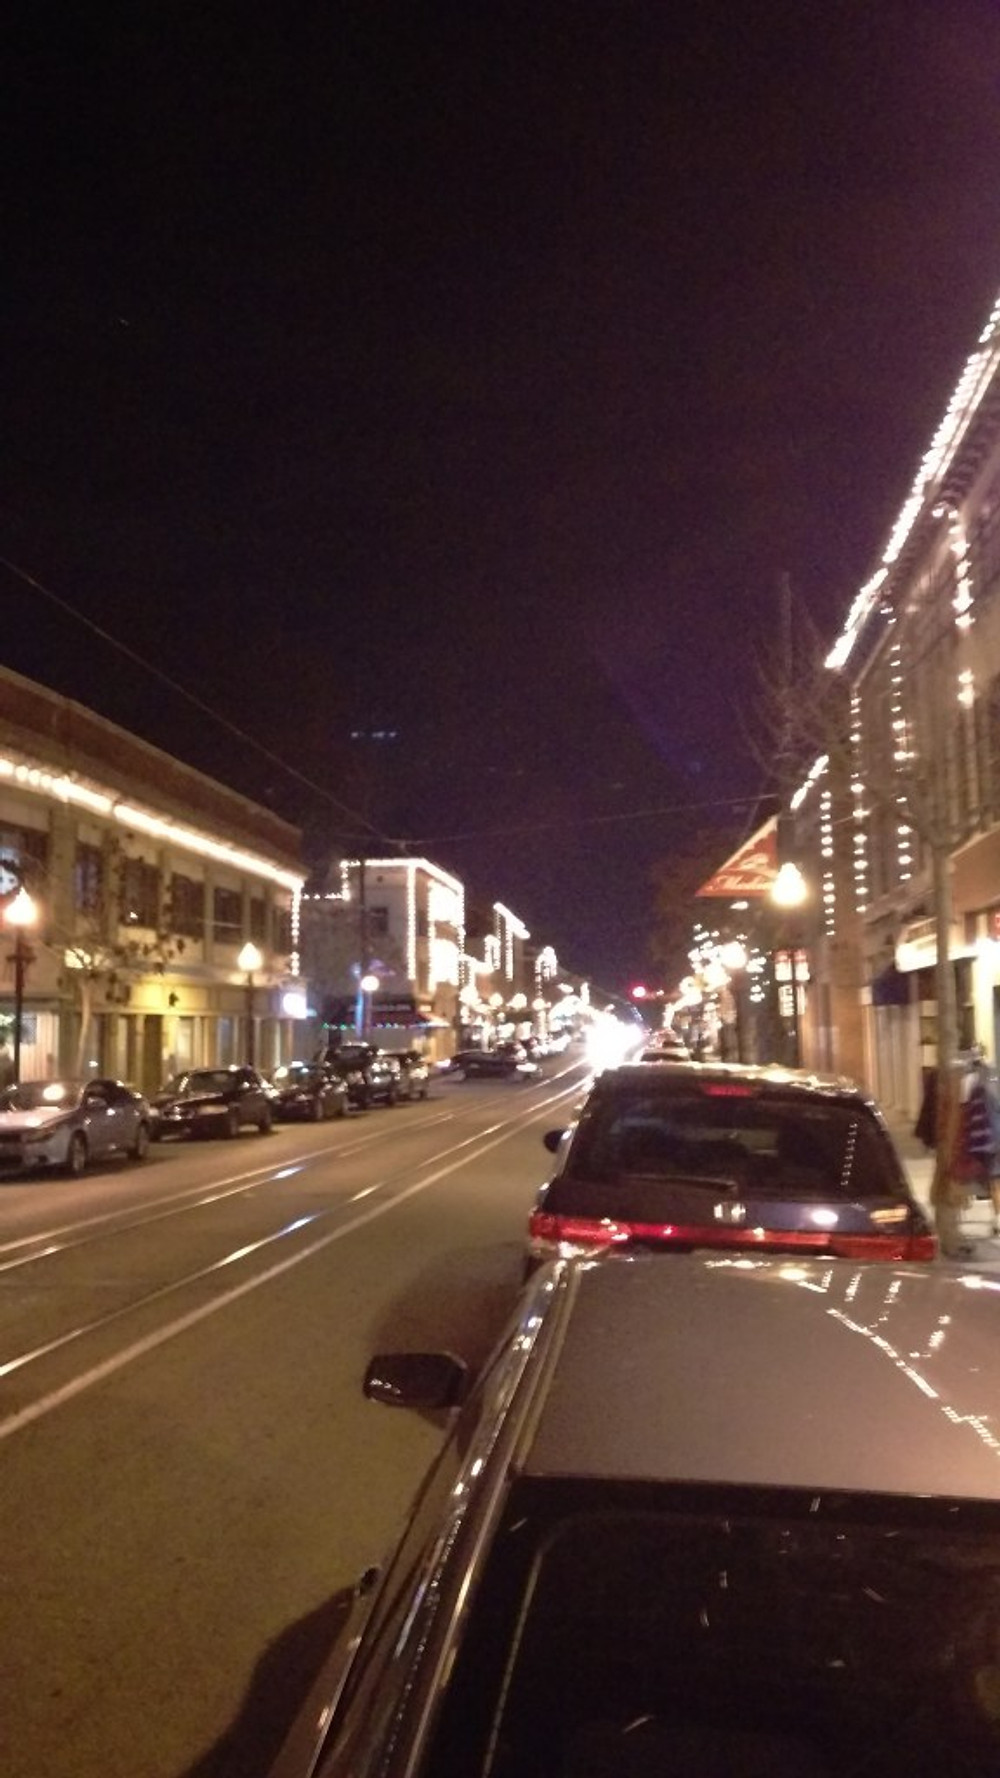 A picture of the main street in Media, PA with all of the Christmas lights on the shop fronts.